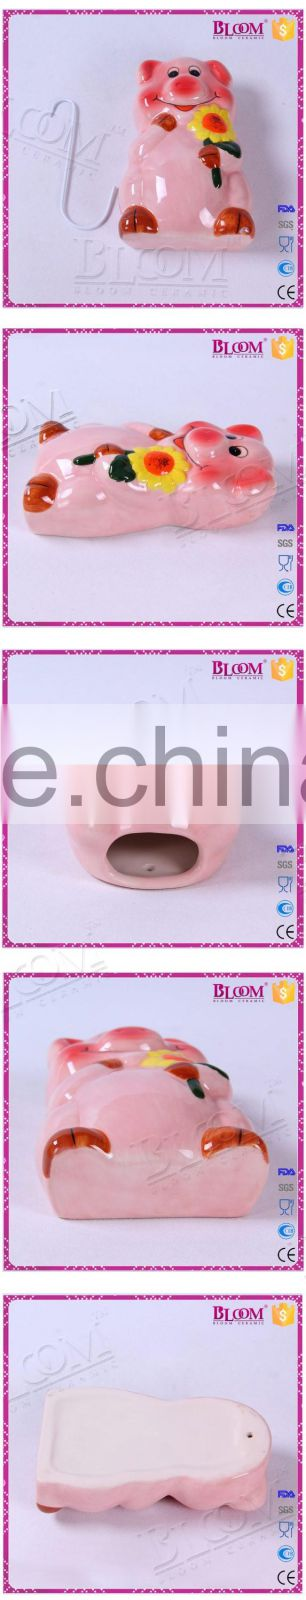 ceramic pig shape the humidifiers for air conditioning